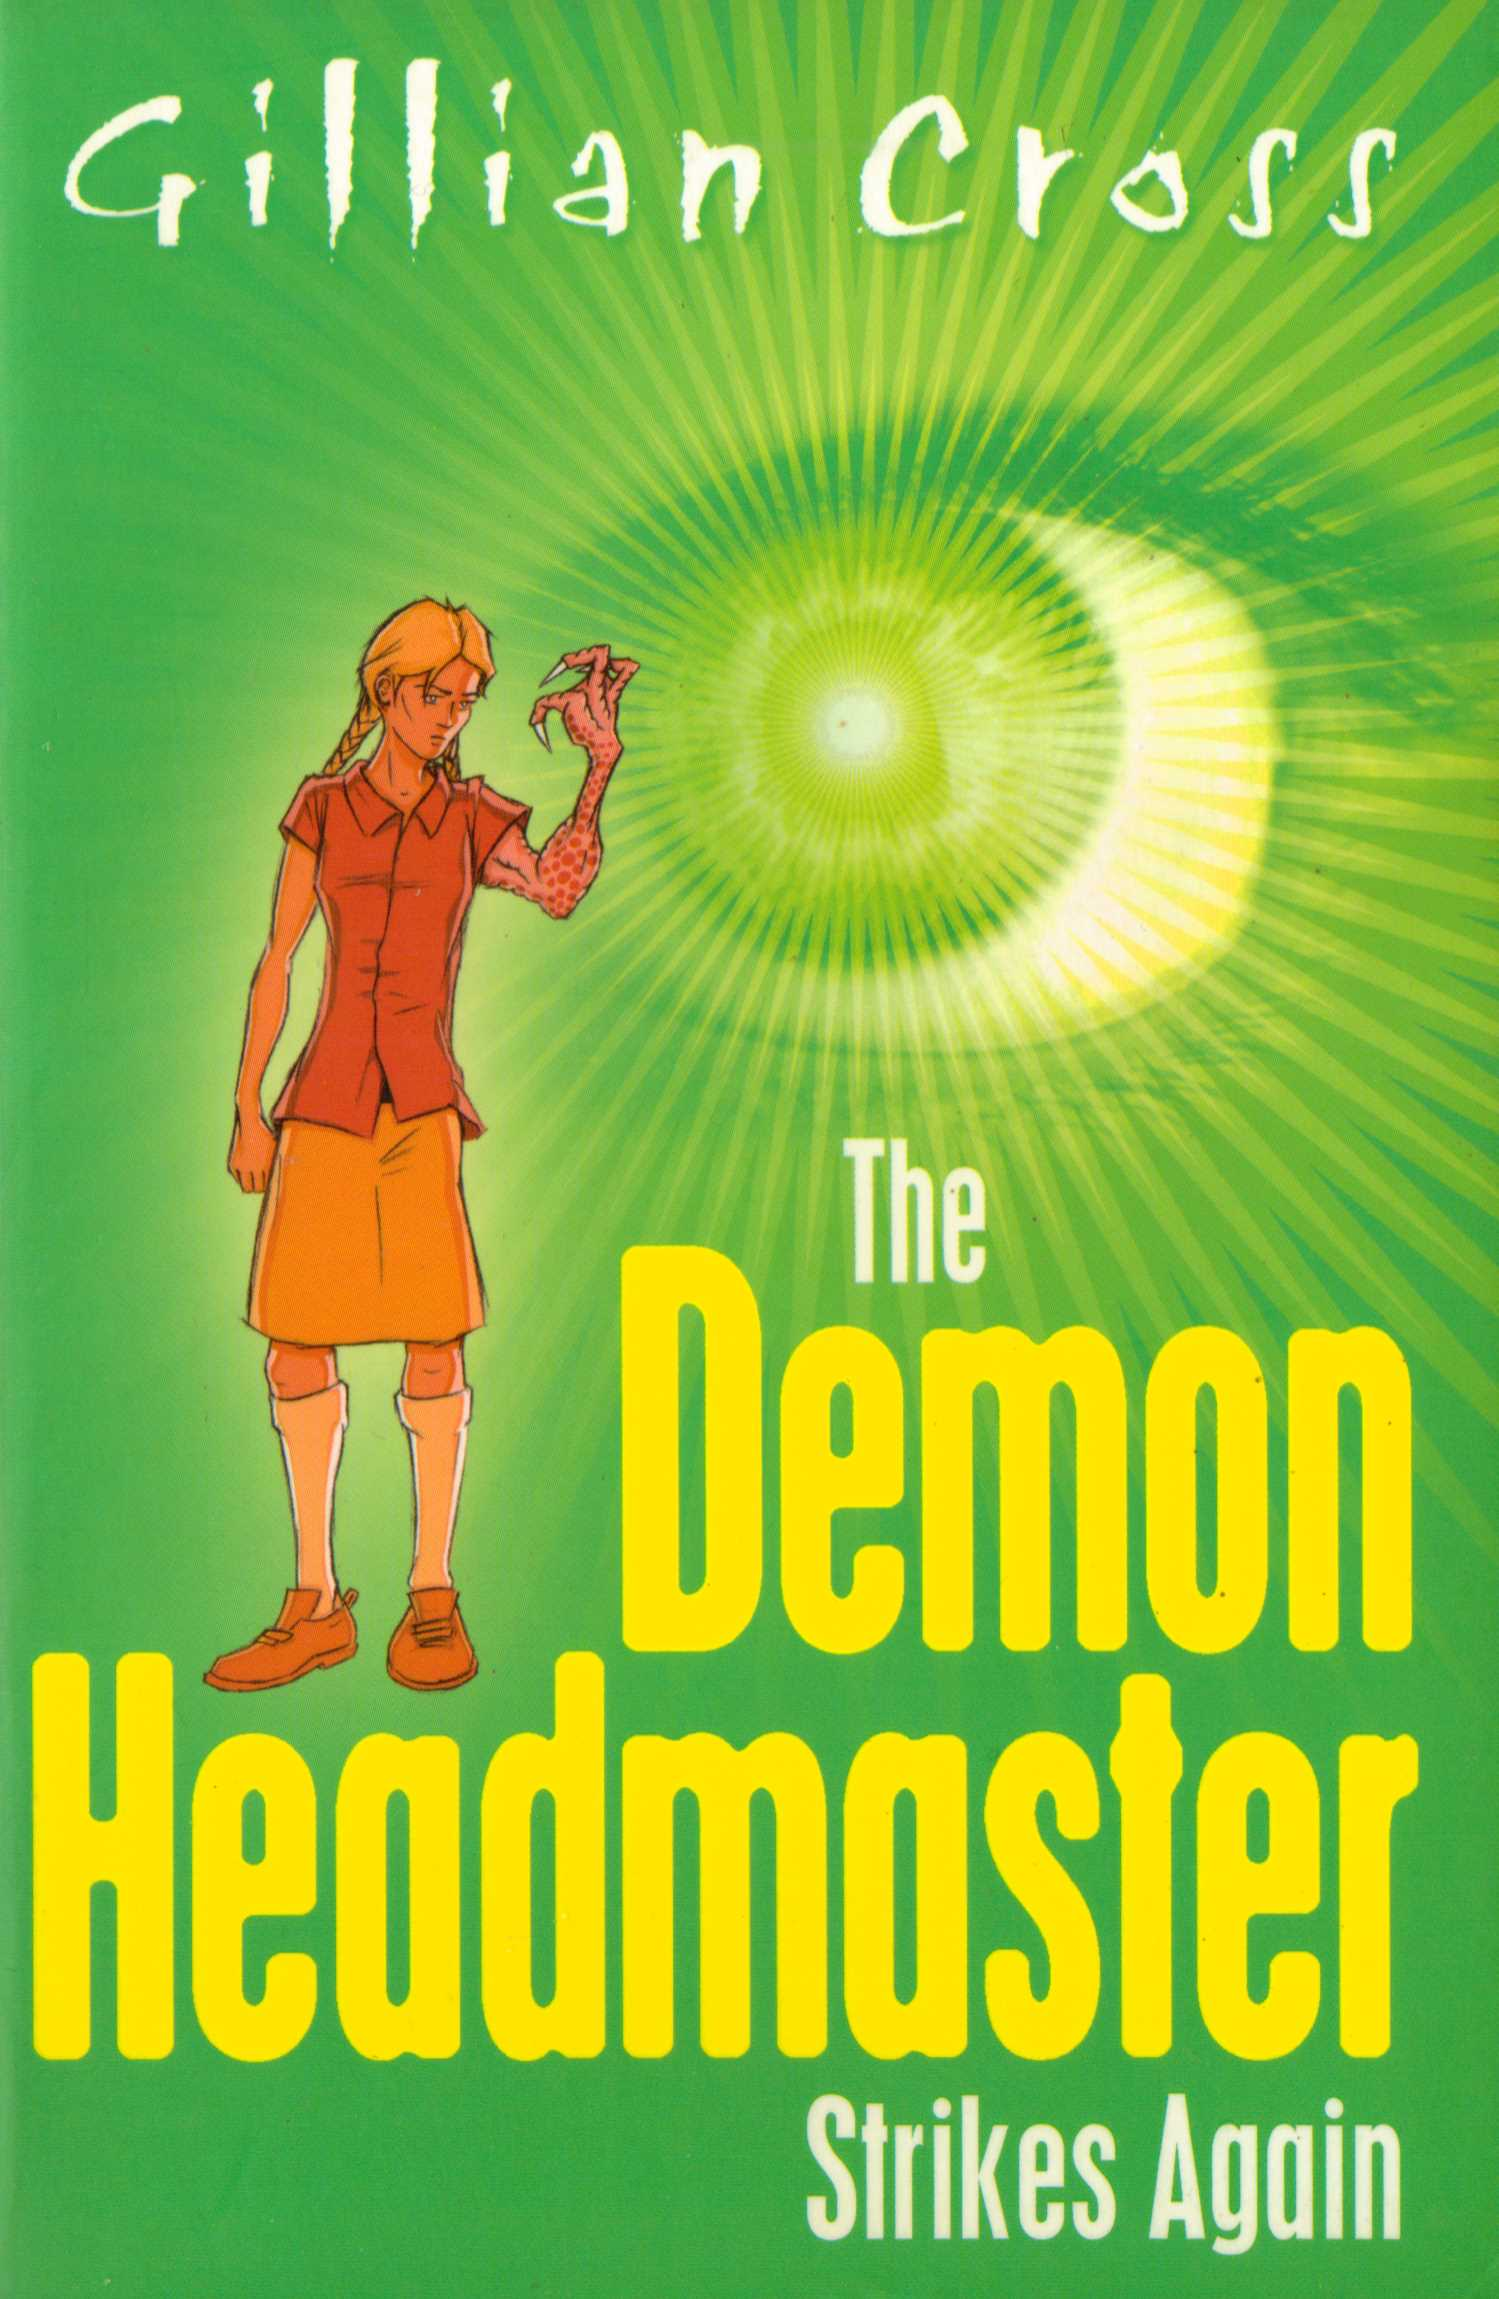 The demon headmaster strikes again demon headmaster book 04